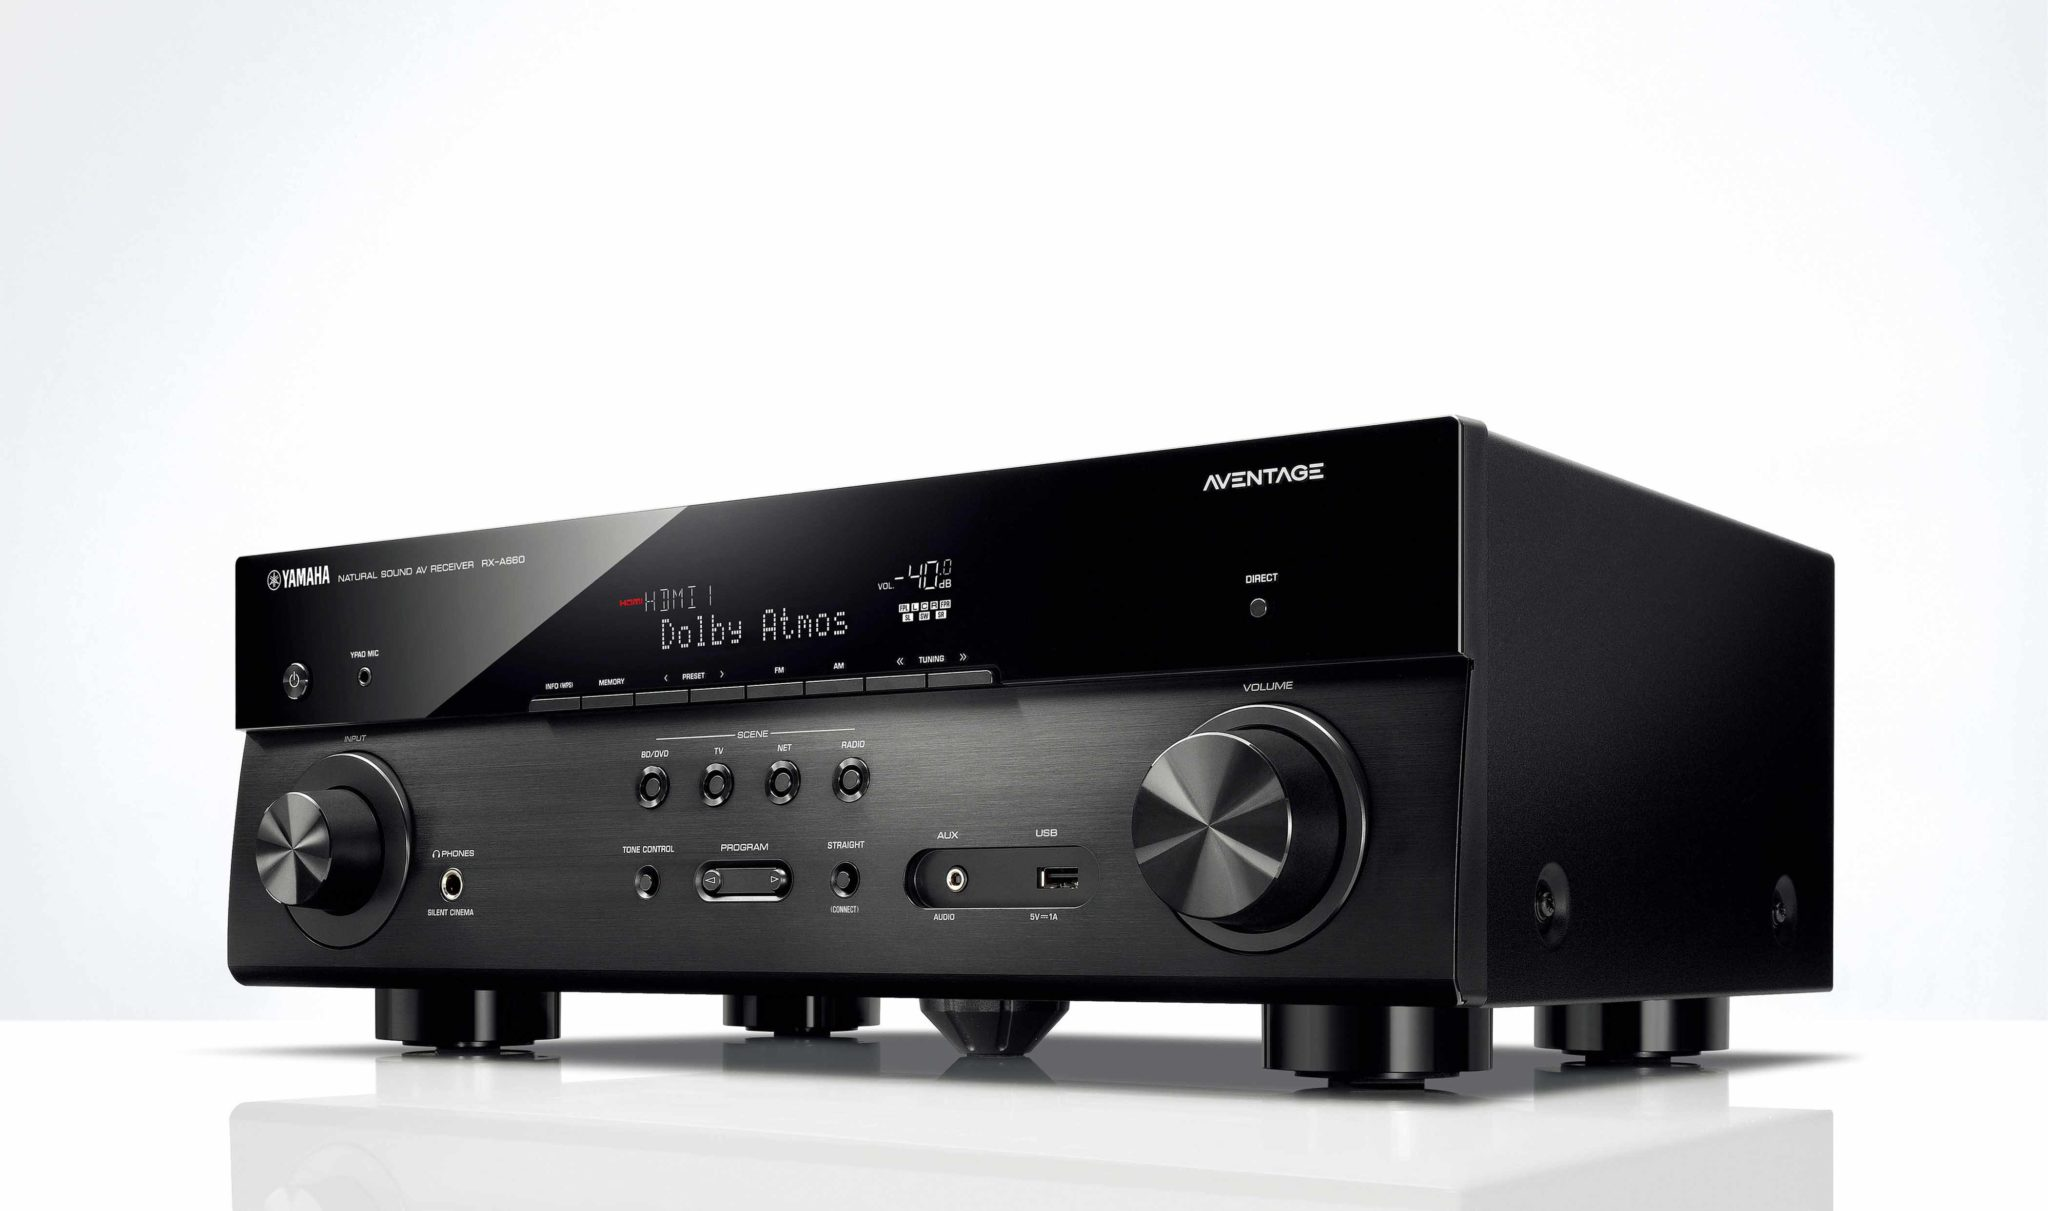 RX A660 Front 1 Yamaha Delivers Slick Streaming Capability With New 8Gen Receivers